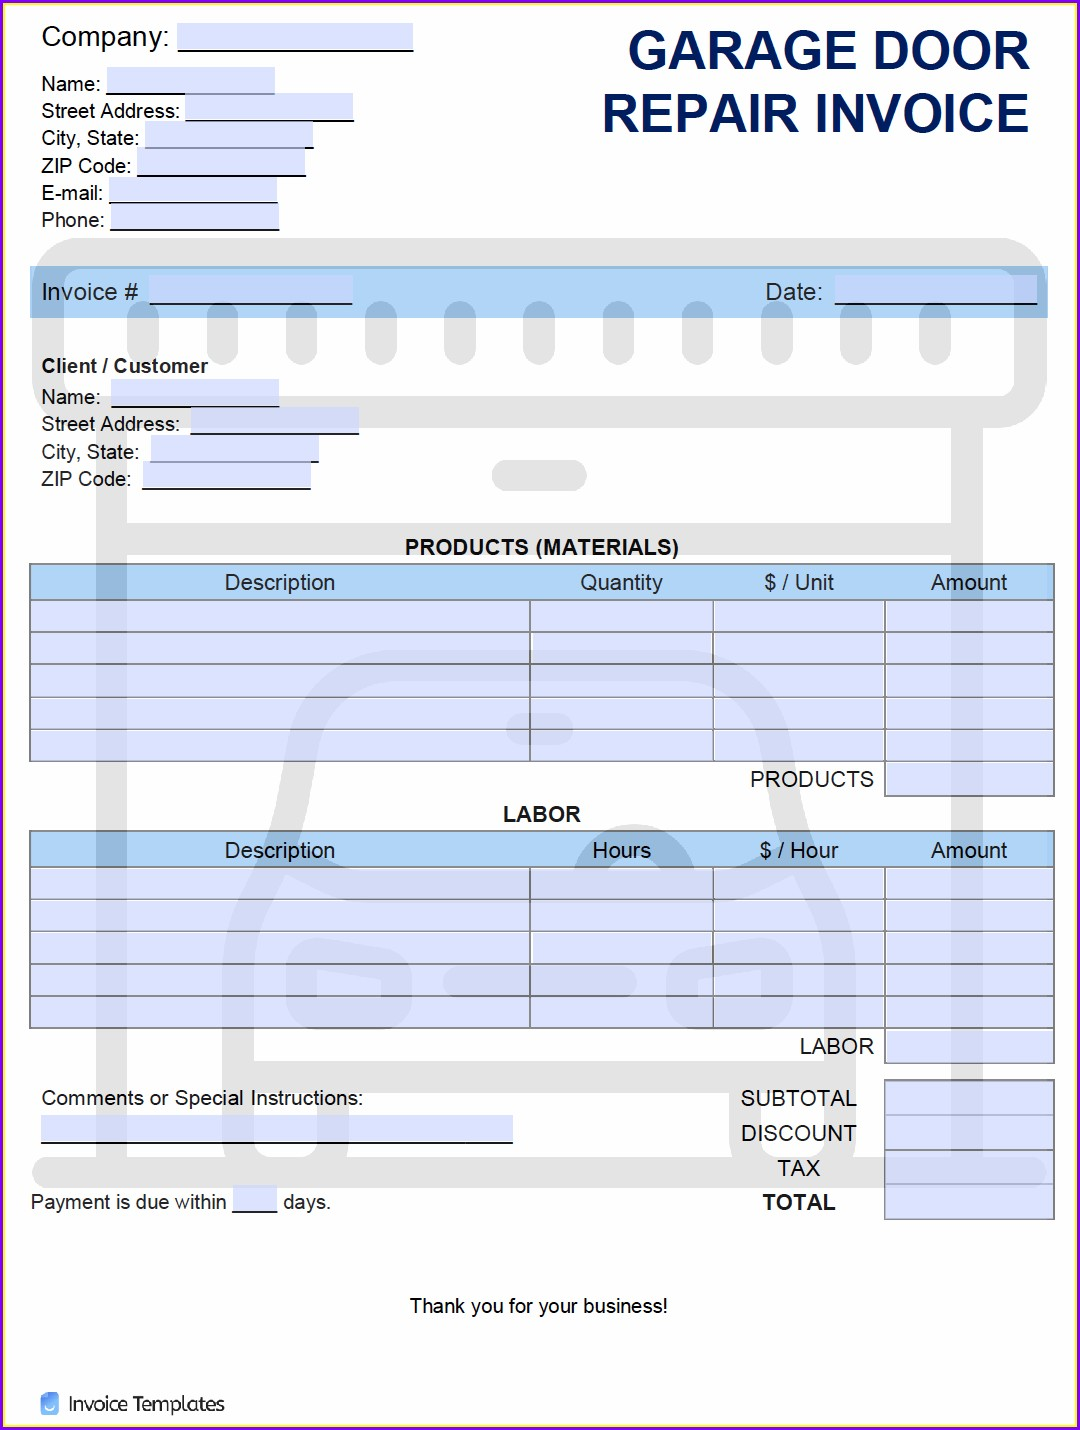 Garage Door Repair Invoice Template